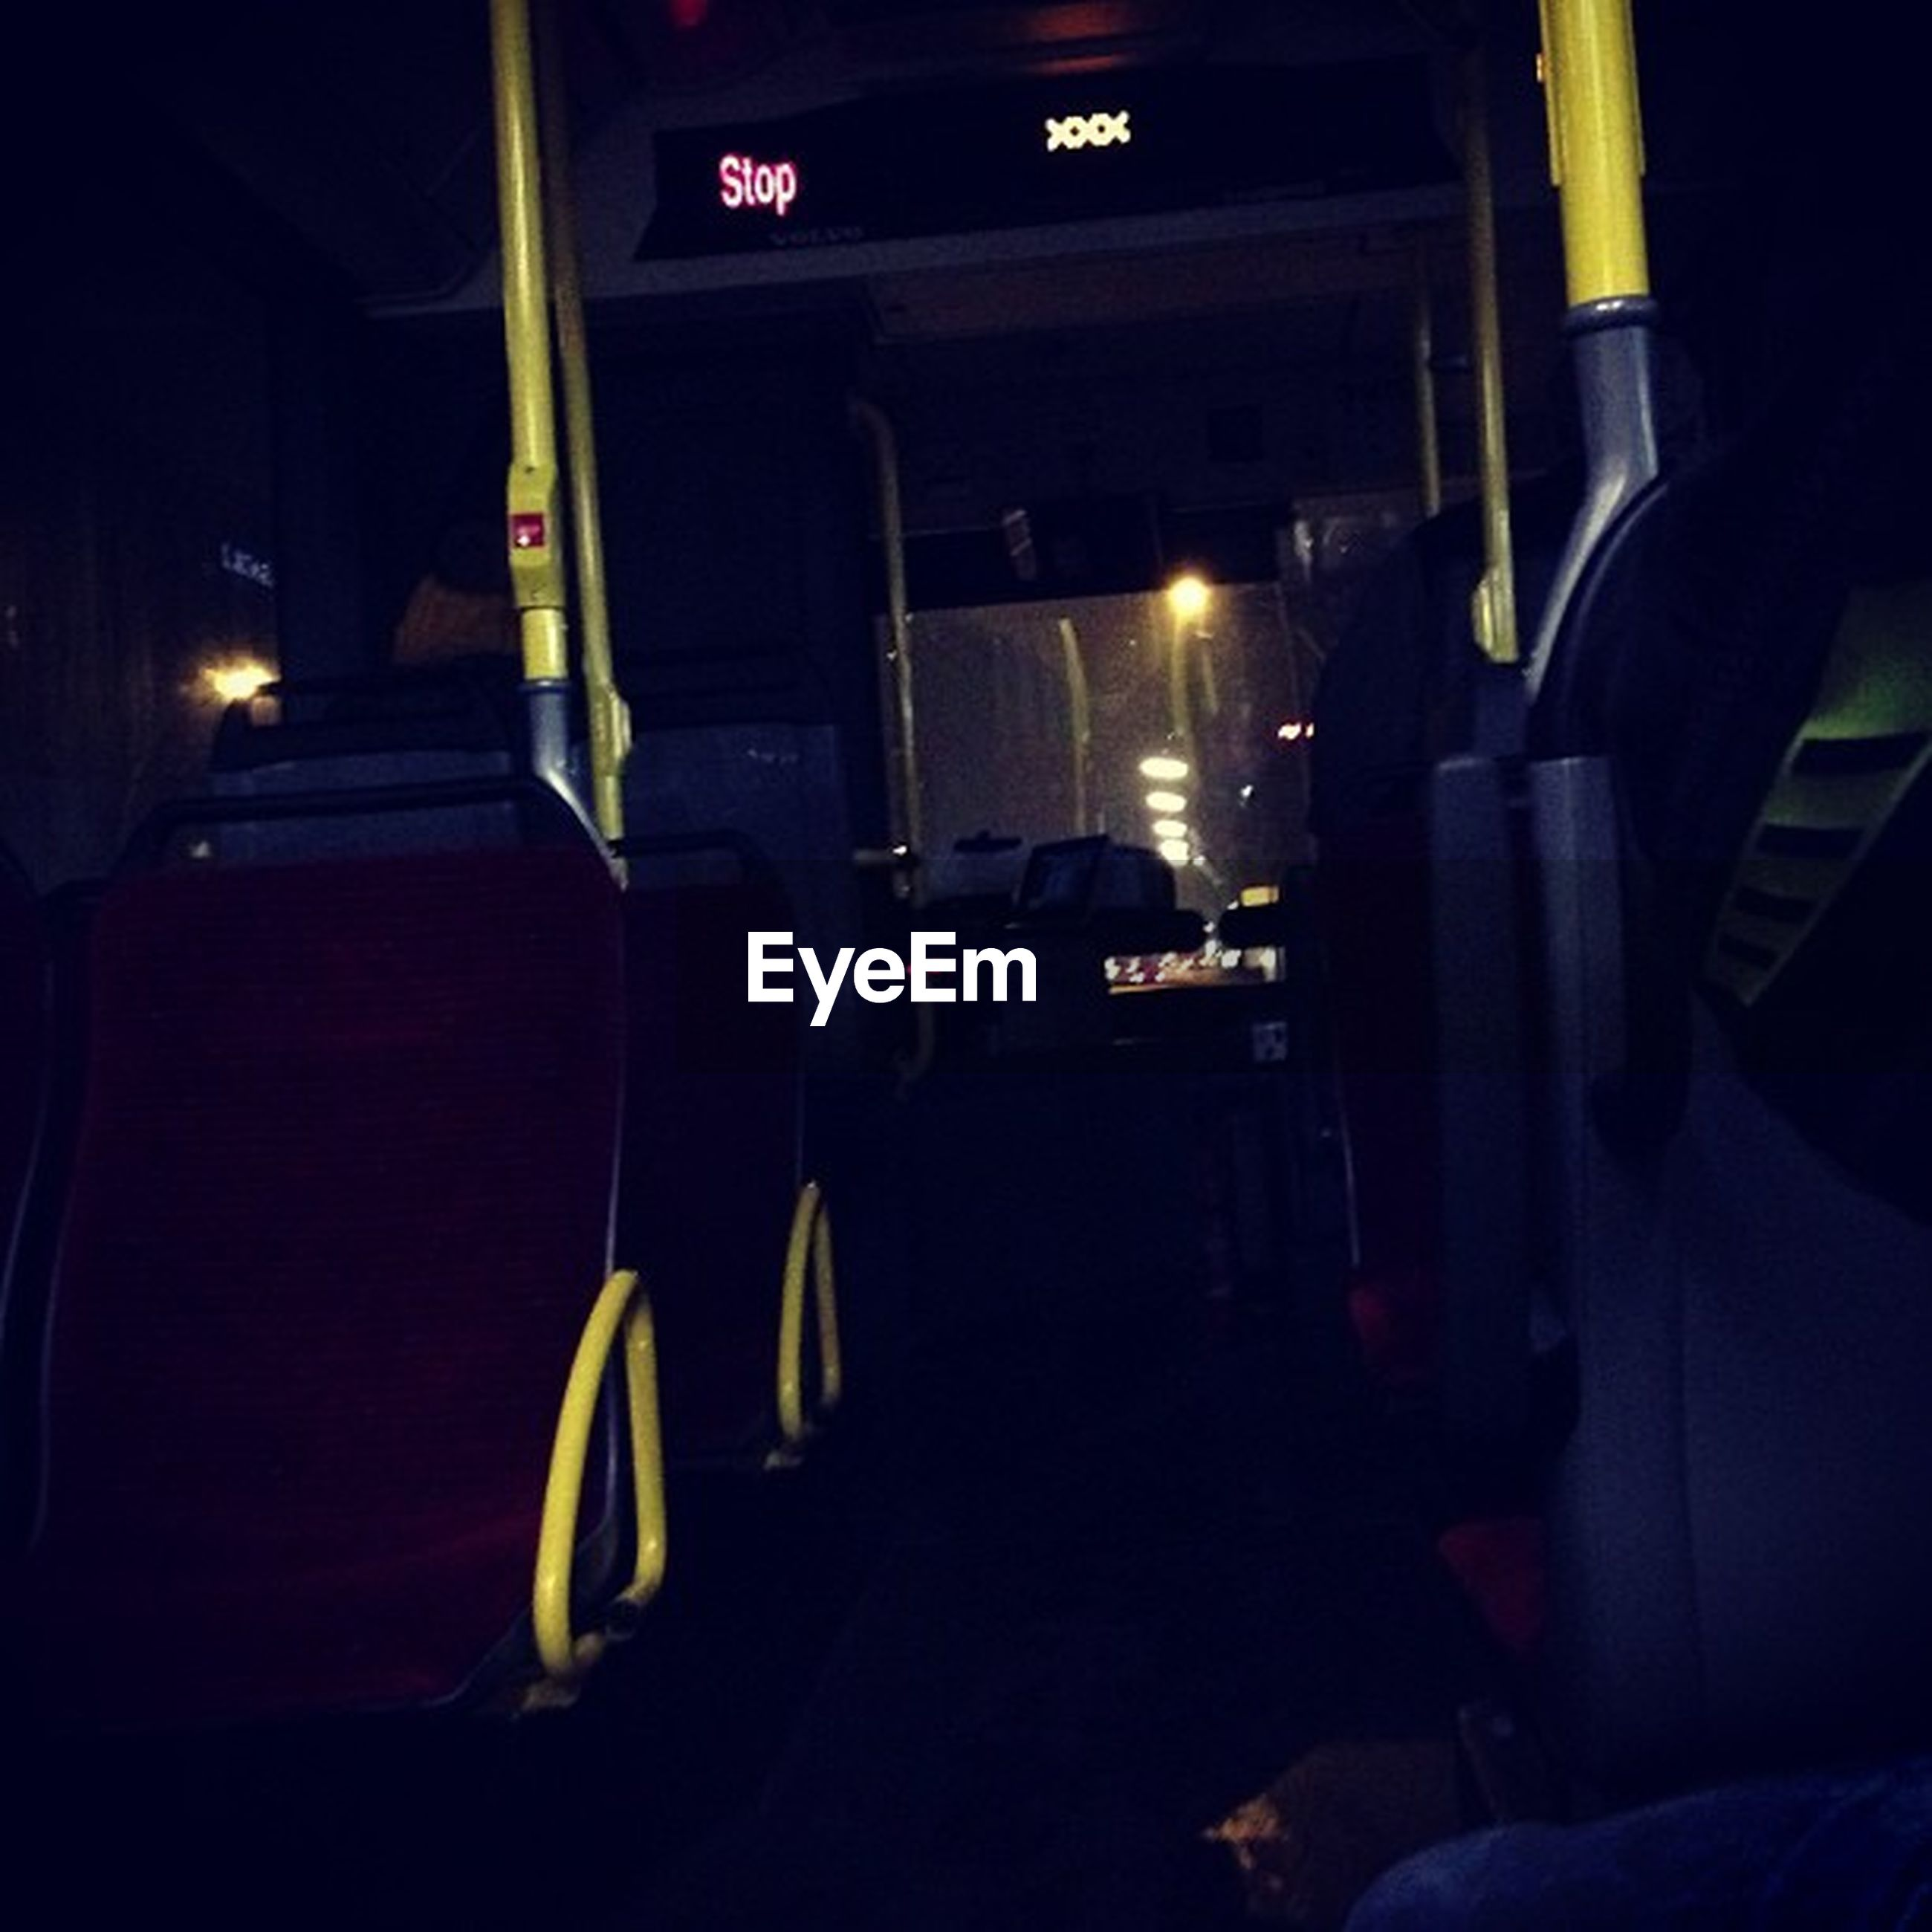 indoors, illuminated, transportation, night, absence, empty, in a row, dark, mode of transport, land vehicle, car, built structure, chair, seat, no people, the way forward, architecture, bus, lighting equipment, incidental people